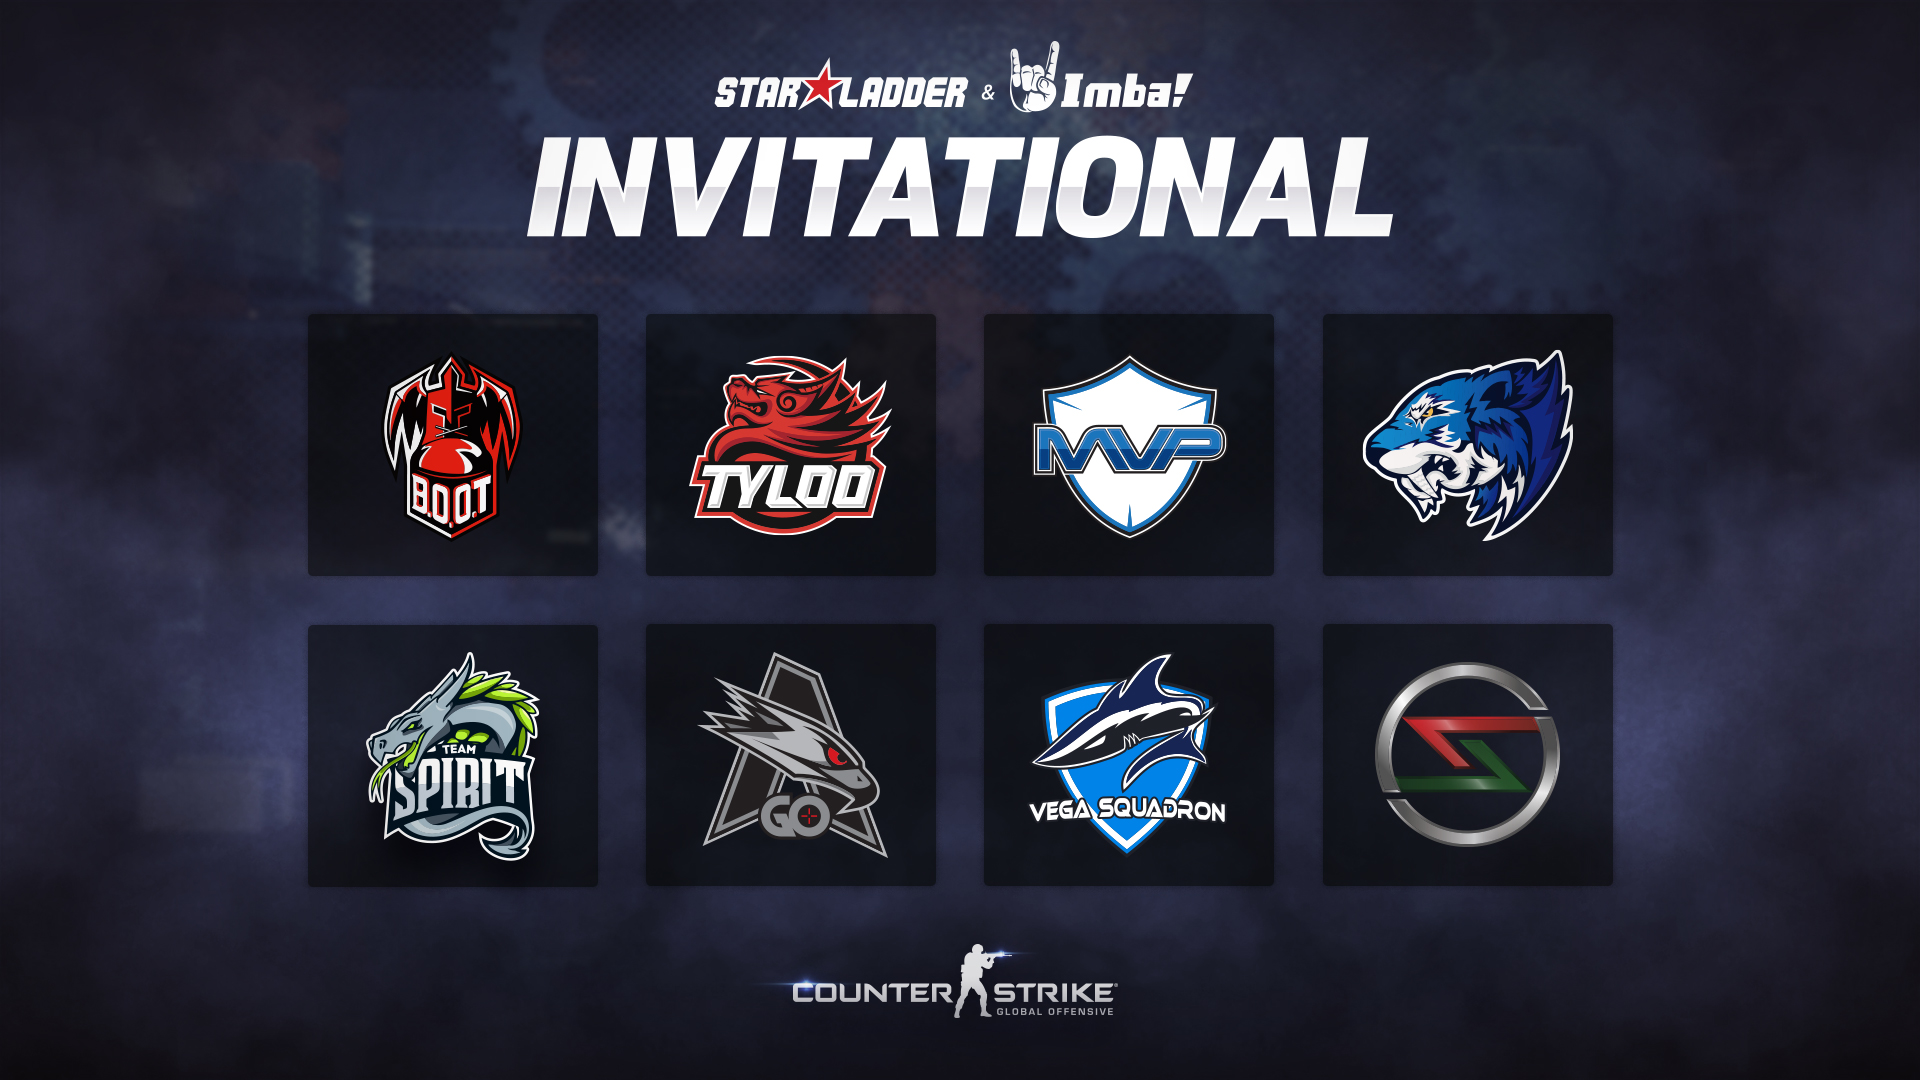 StarLadder_Imbatv_Invitational